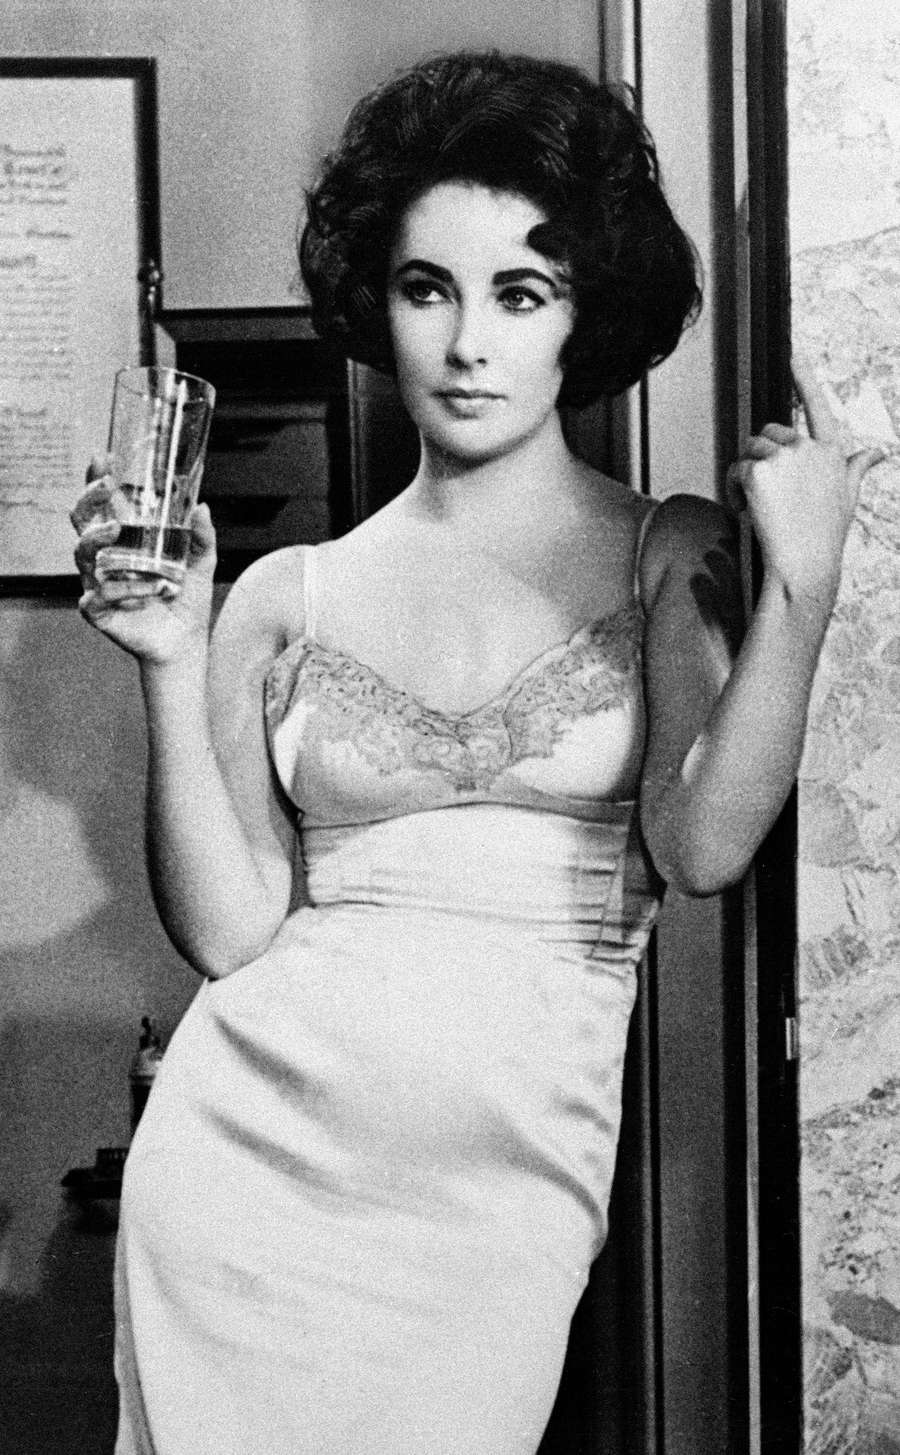 Elizabeth Taylor in BUtterfield 8 in 1961. (AP Photo/File)